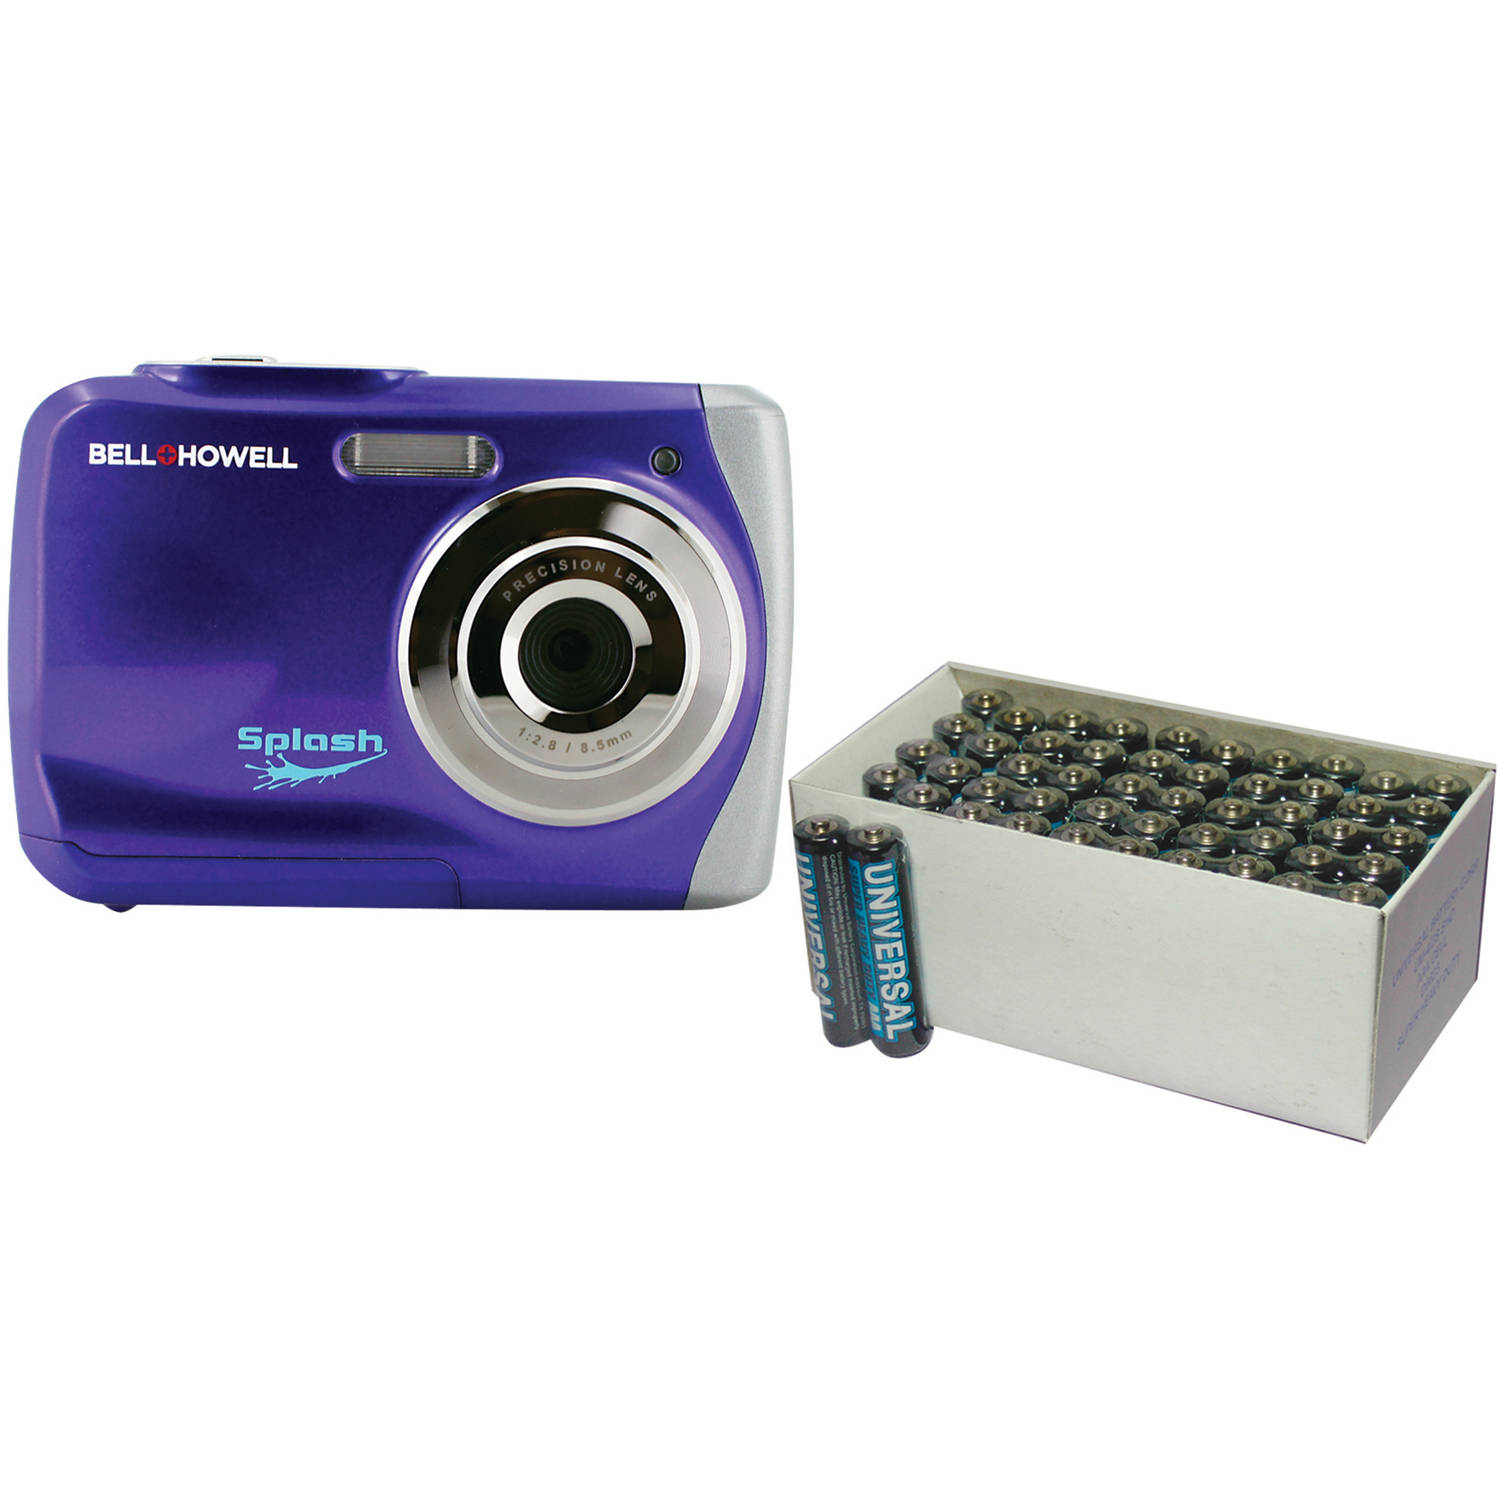 Bell+Howell Purple WP7 Waterproof Digital Camera with 12 Megapixels and UPG 50-Pack AAA Batteries